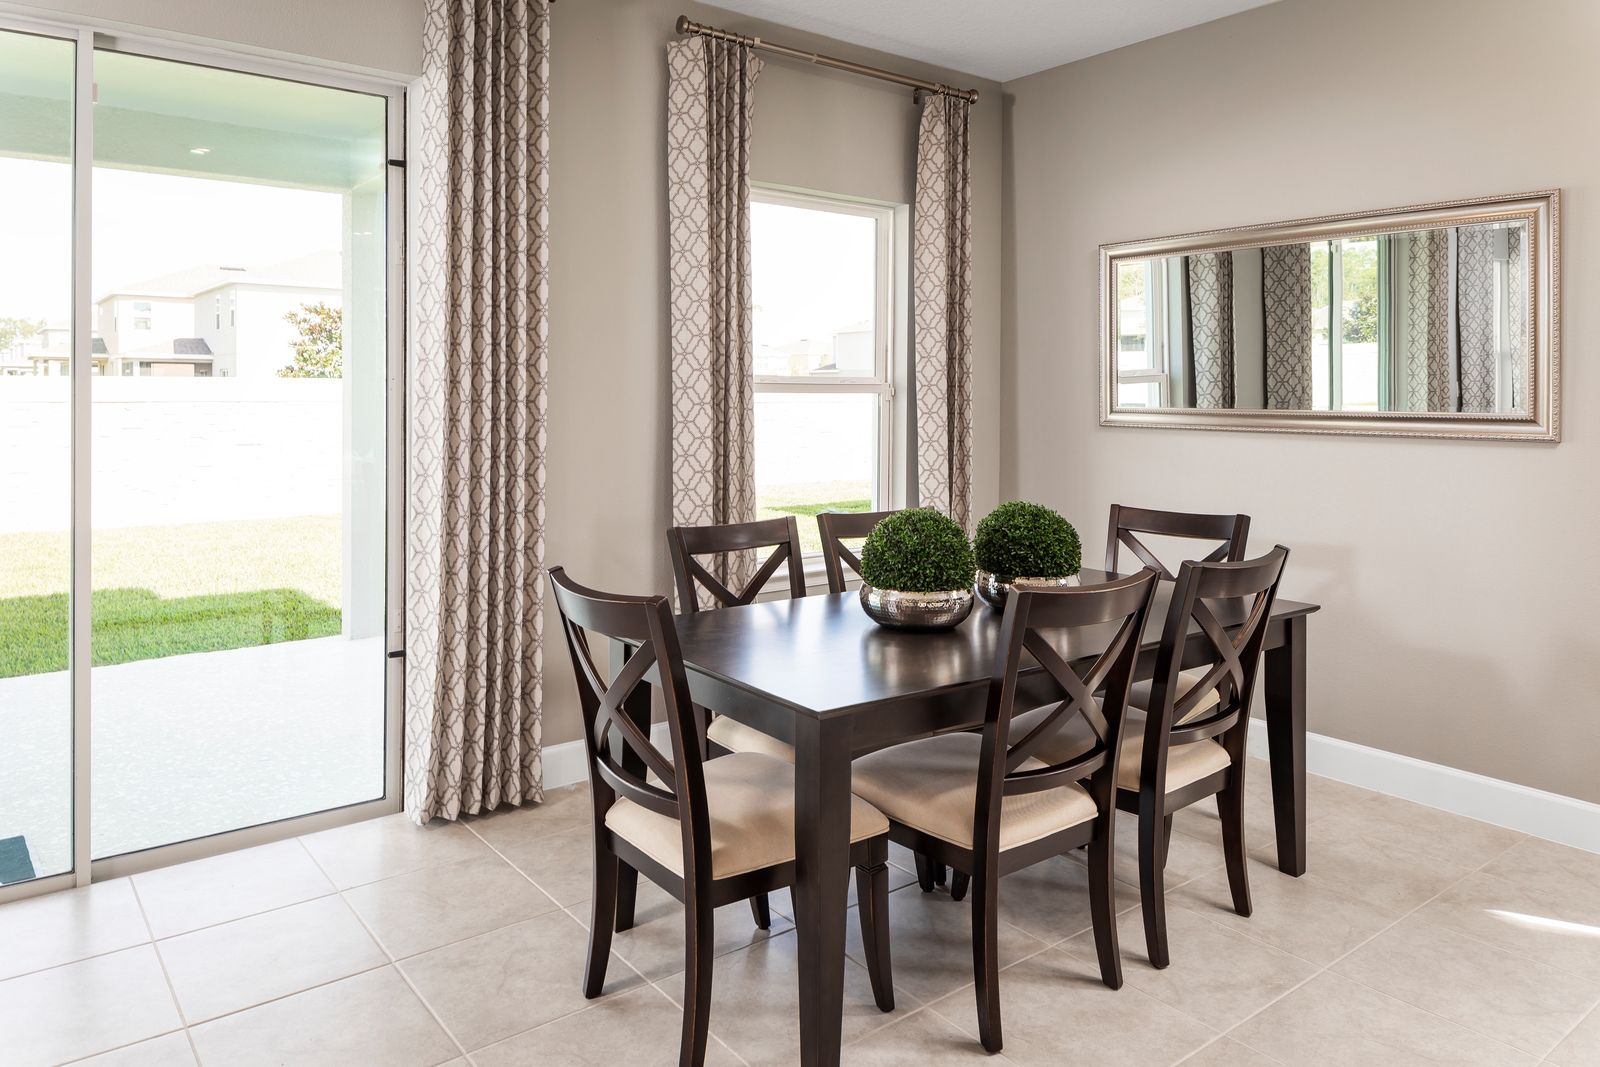 Living Area featured in the Hadley Bay By Ryan Homes in Orlando, FL